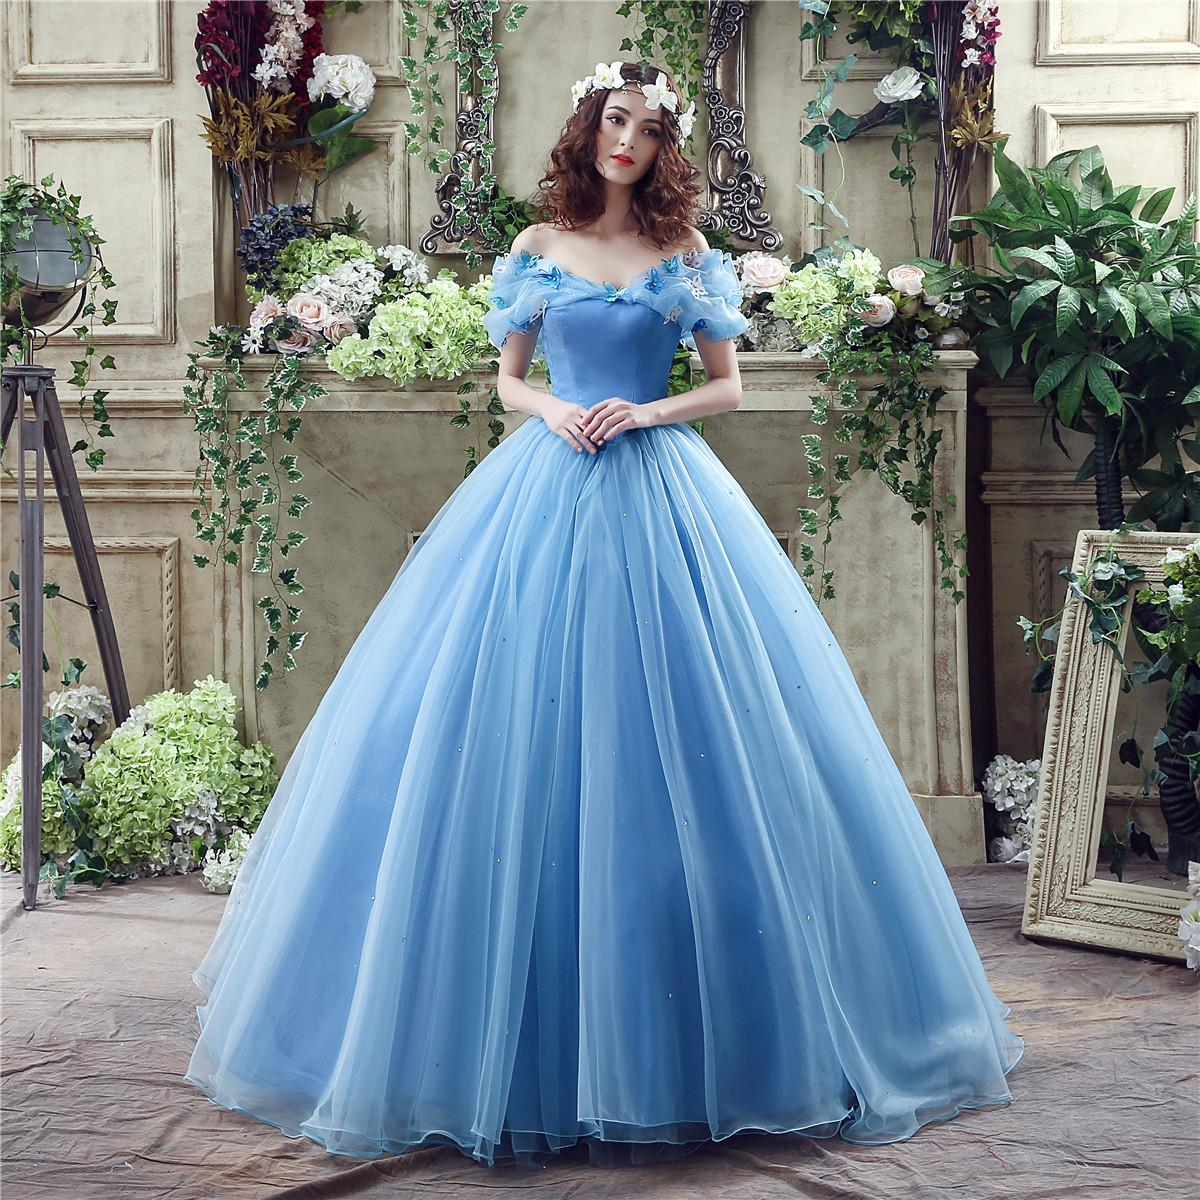 Masquerade Ball Gowns for Girls – fashion dresses